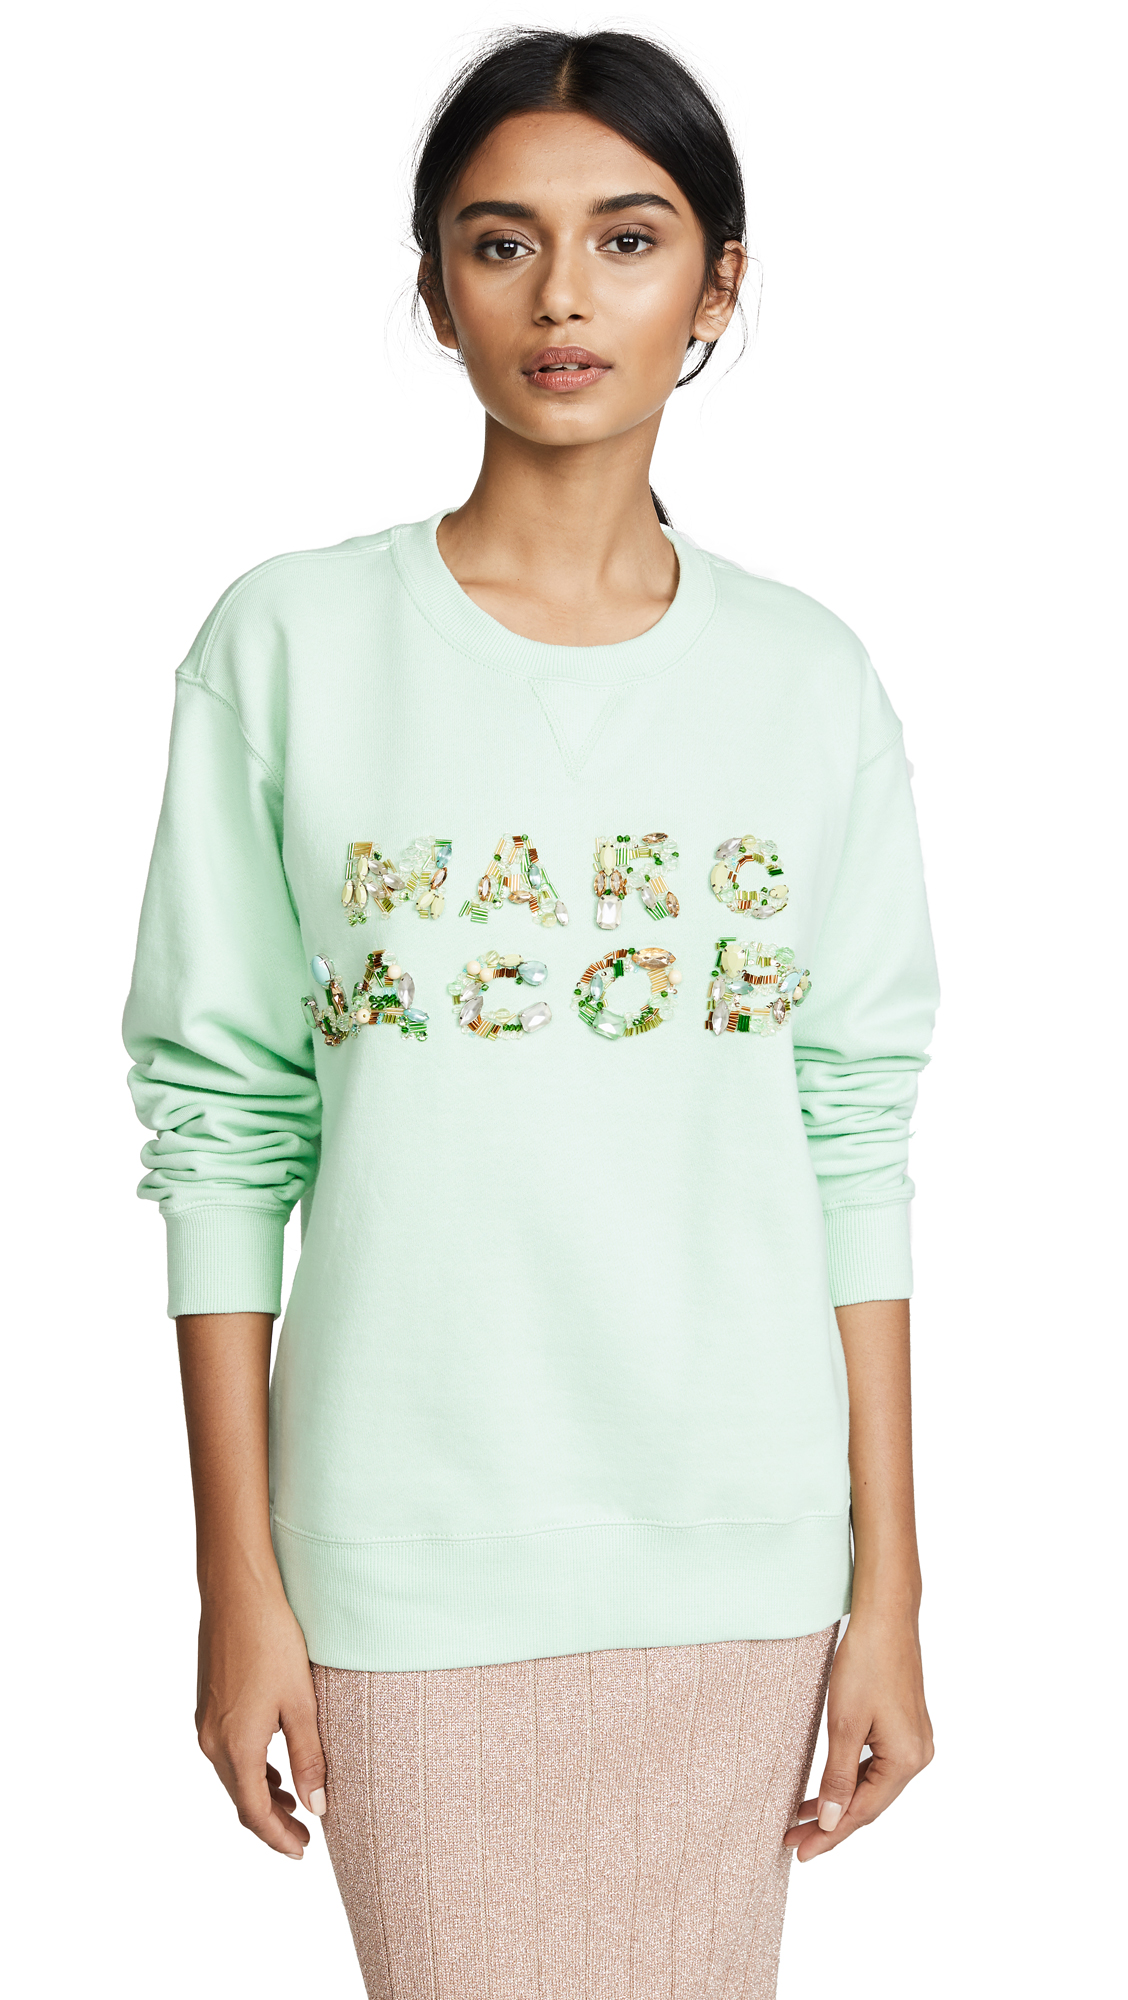 Marc Jacobs Luxe Embellished Sweatshirt In Pale Green